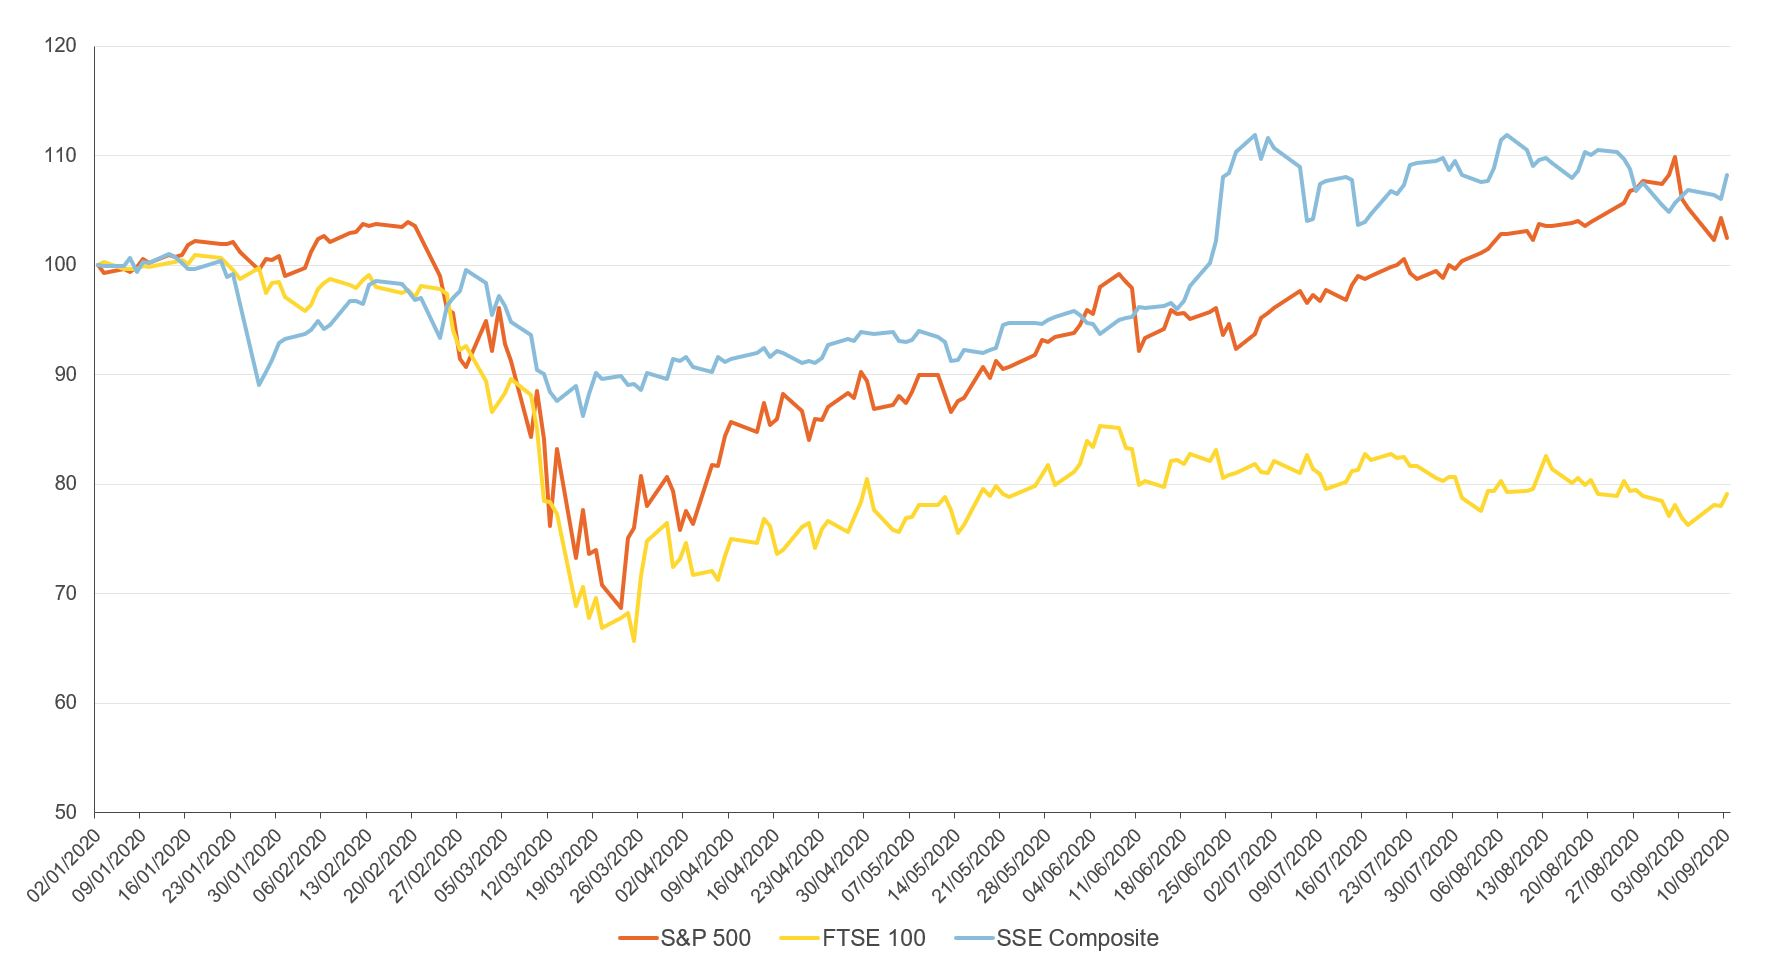 Figure showing S&P 500 Index (United States), FTSE 100 Index (UK) and Shanghai Stock Exchange (SSE) Composite Index in 2020